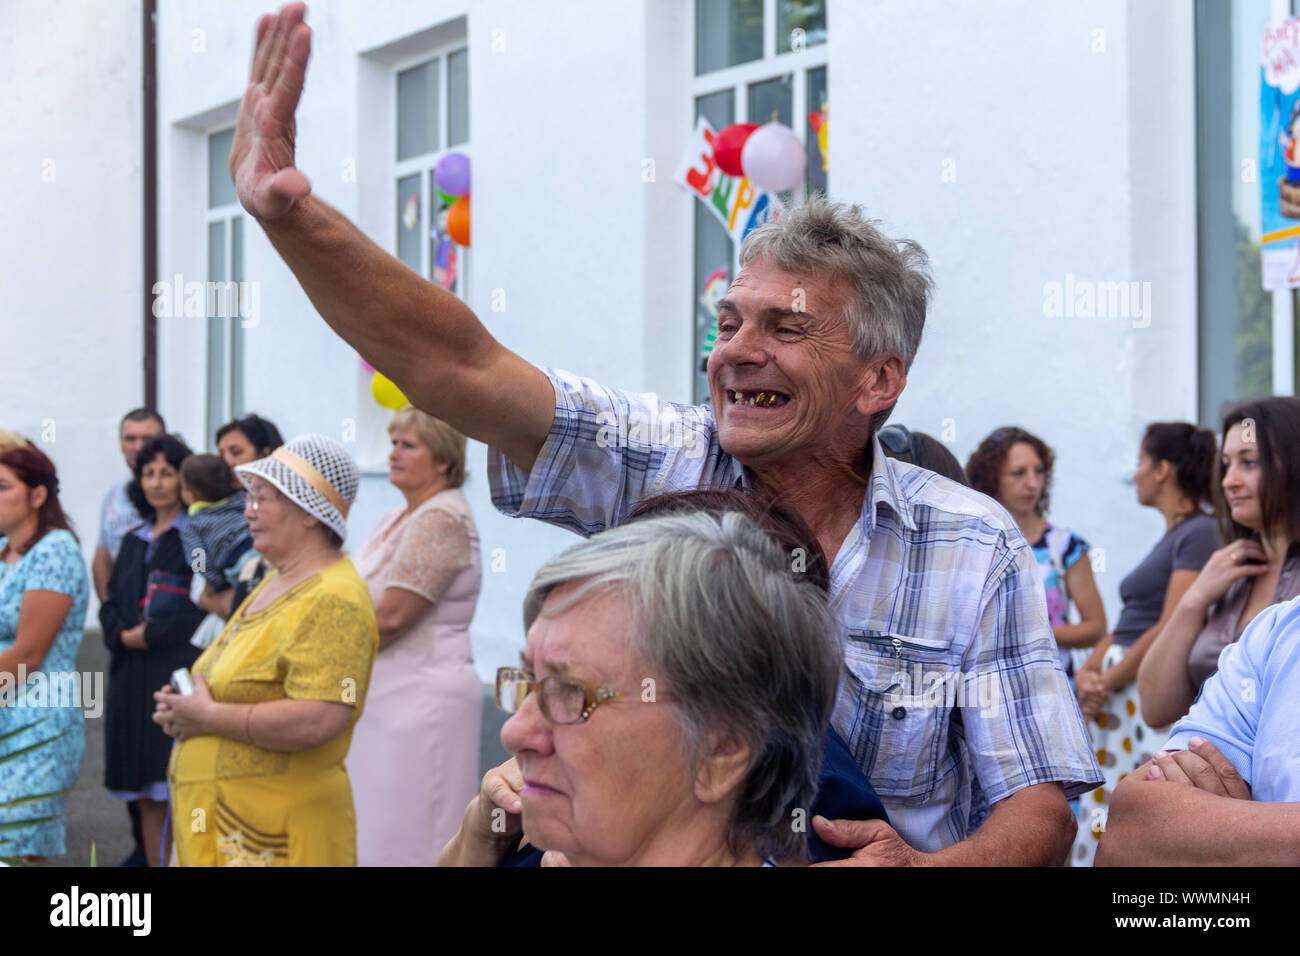 Adygea, Russia - September 2, 2019: Cheerful toothless man happily waving in the crowd Stock Photo